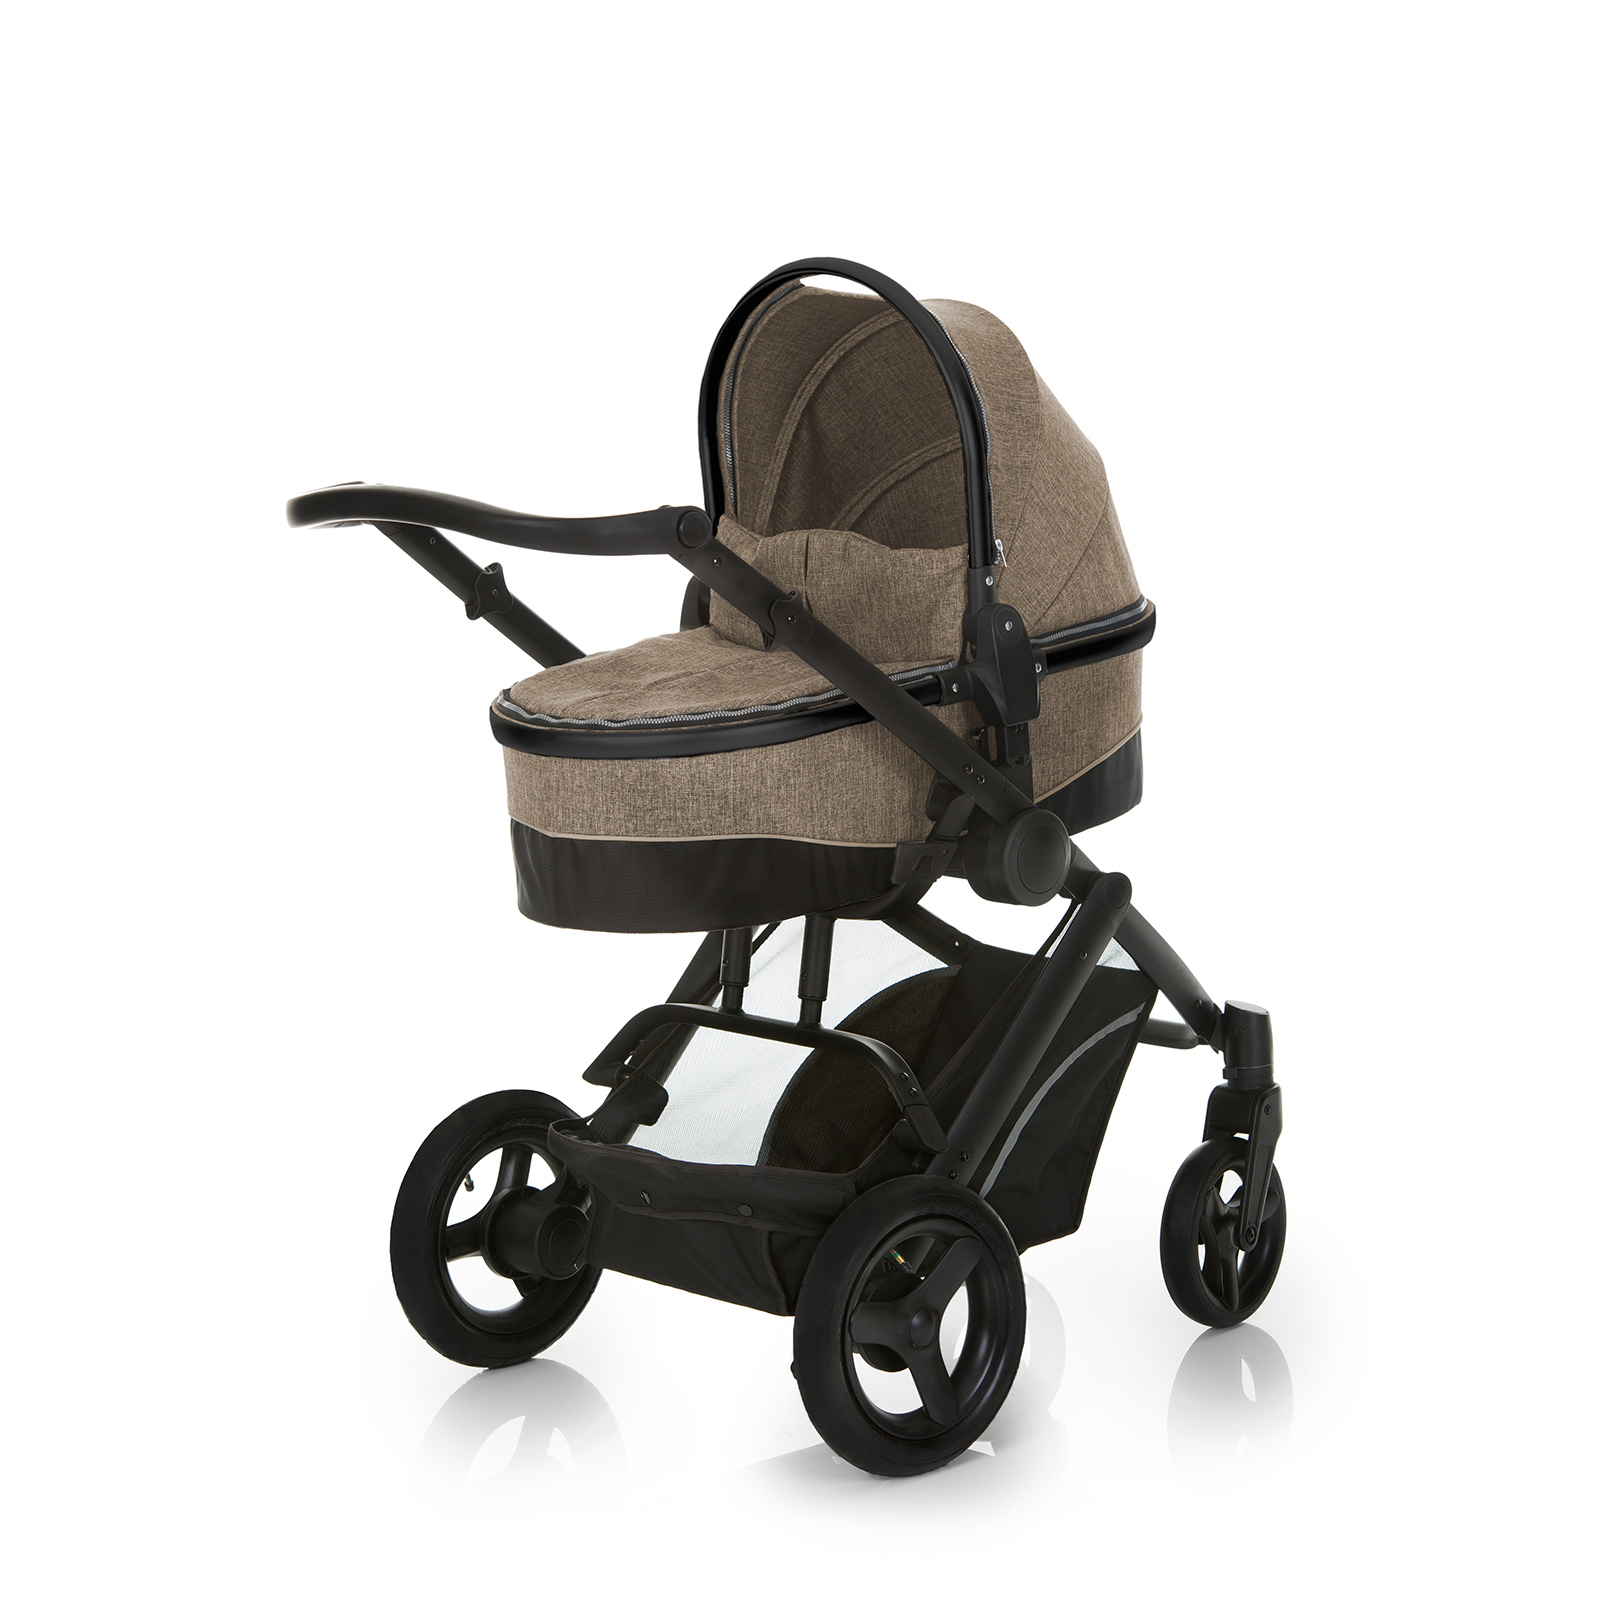 hauck maxan 4 trio set travel system beige from birth 2 way facing with car seat 400792340351 ebay. Black Bedroom Furniture Sets. Home Design Ideas